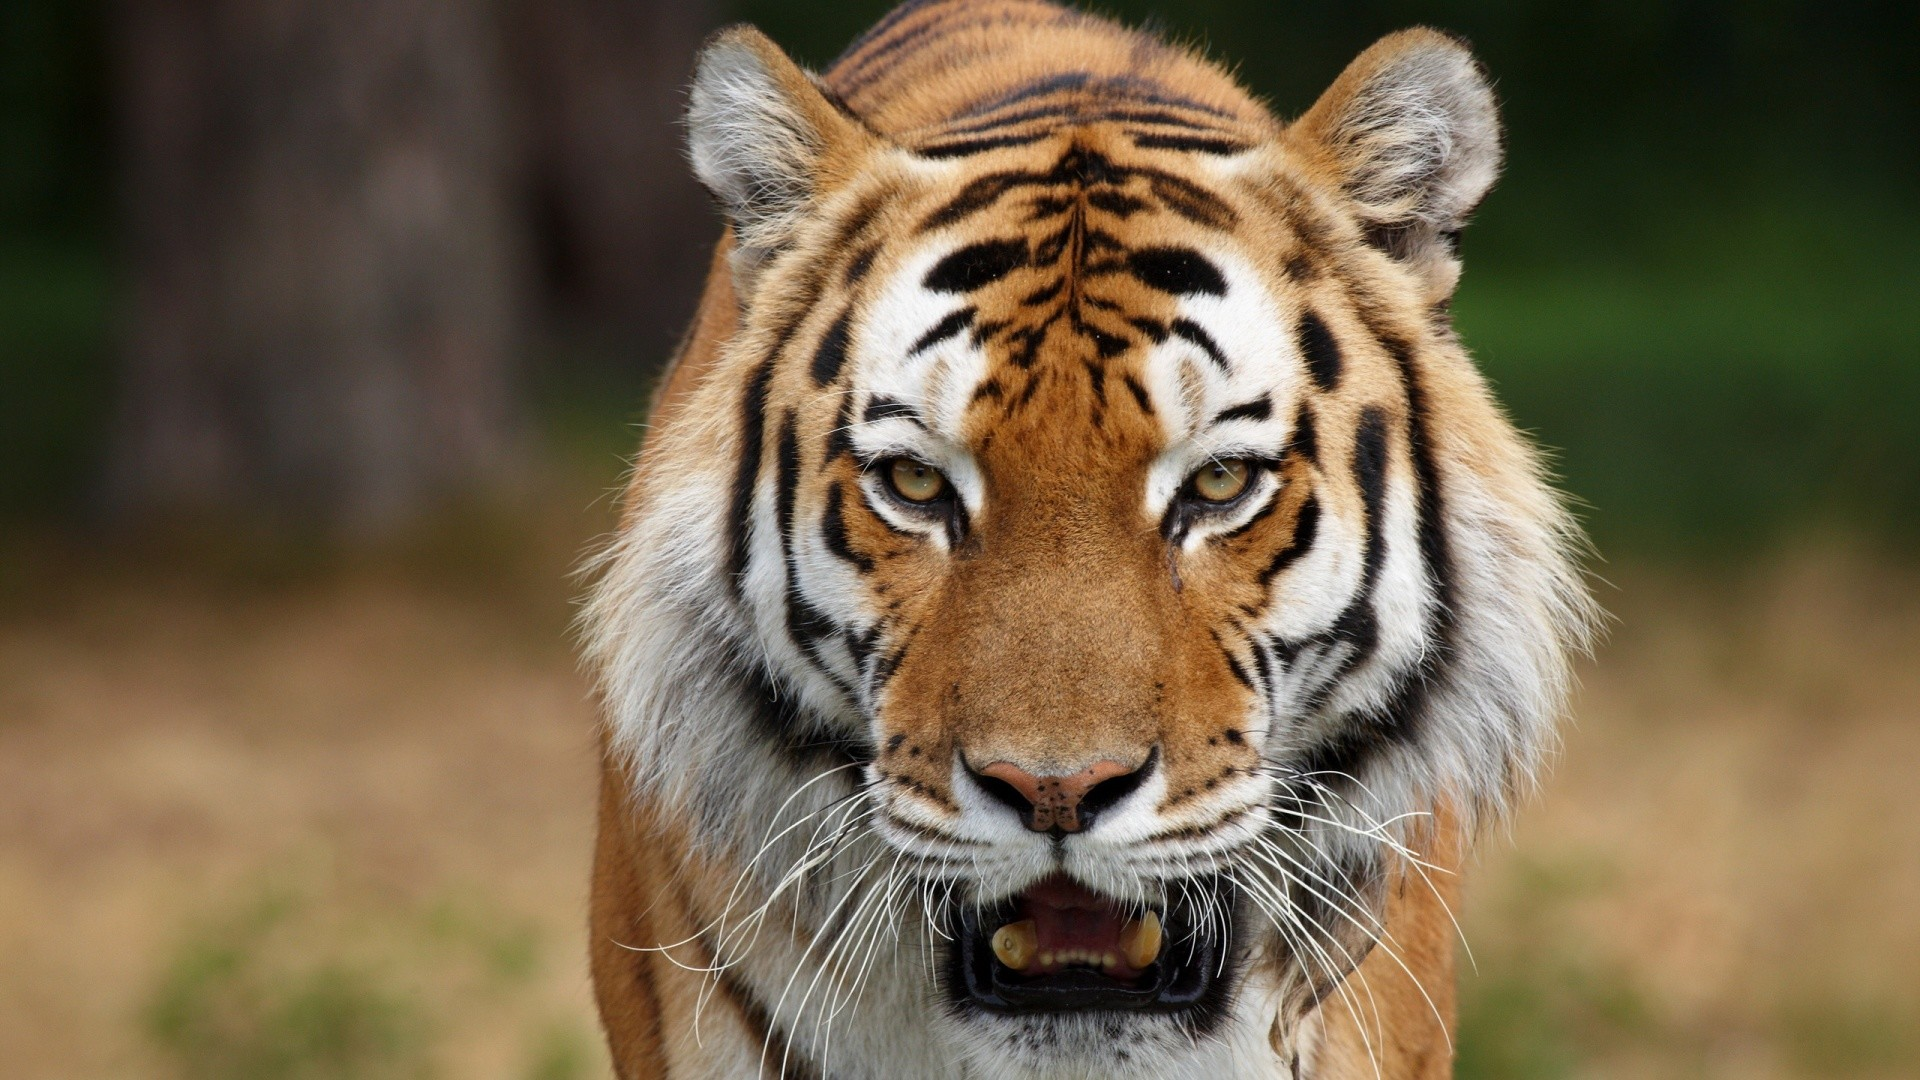 0 Awesome Fantasy Tiger 1080P full HD Wallpapers HD  Animal Wallpapers